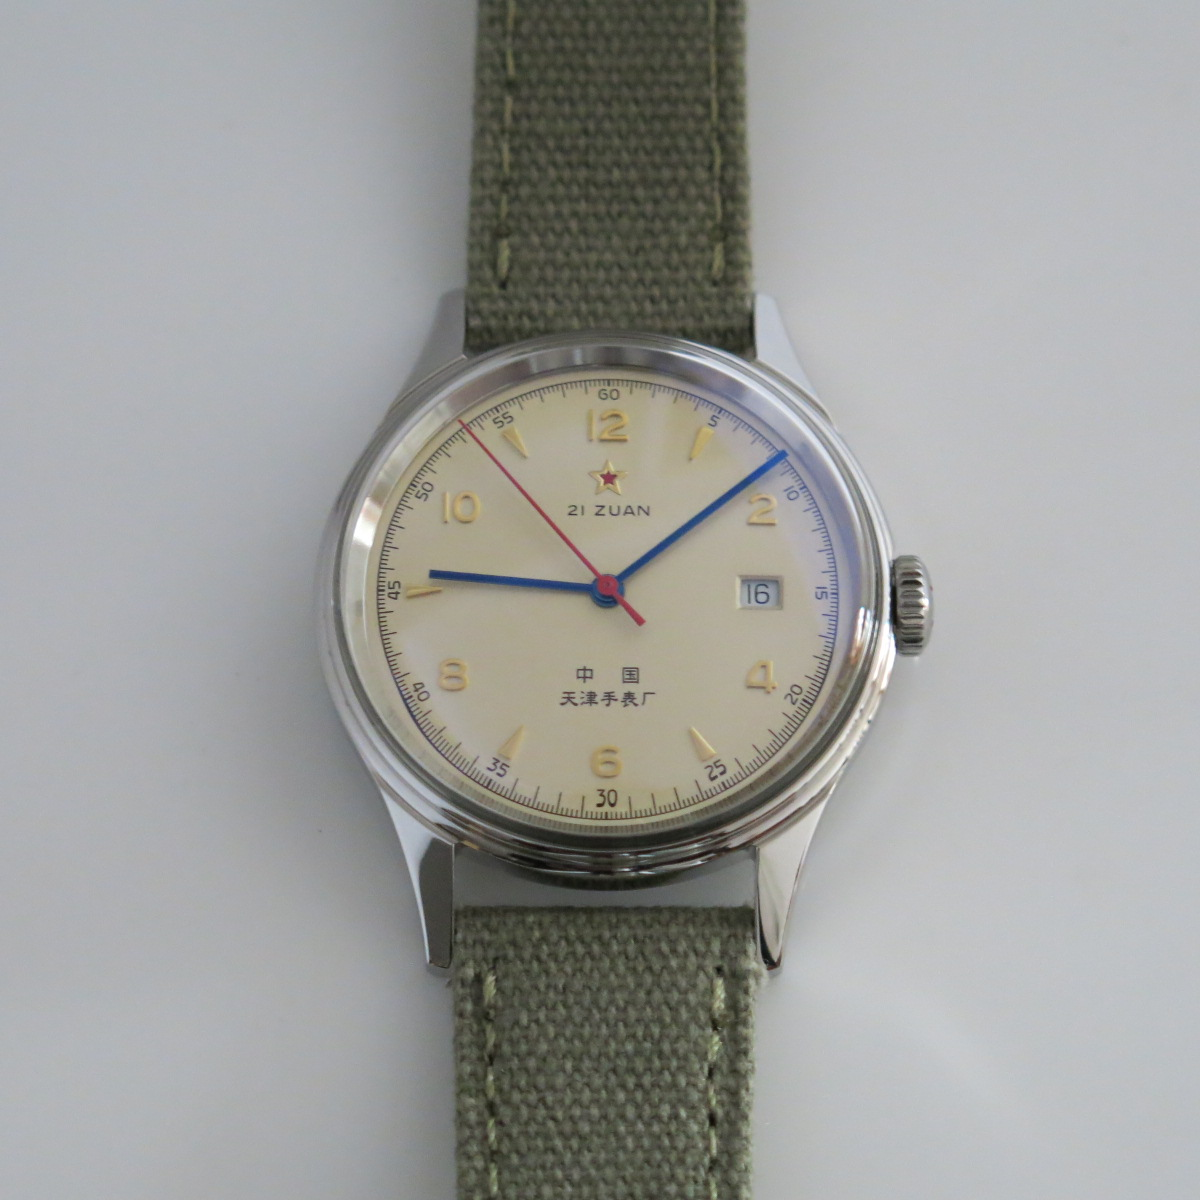 1963 re-issue China Air Force 1st automatic wristwatch ST2130